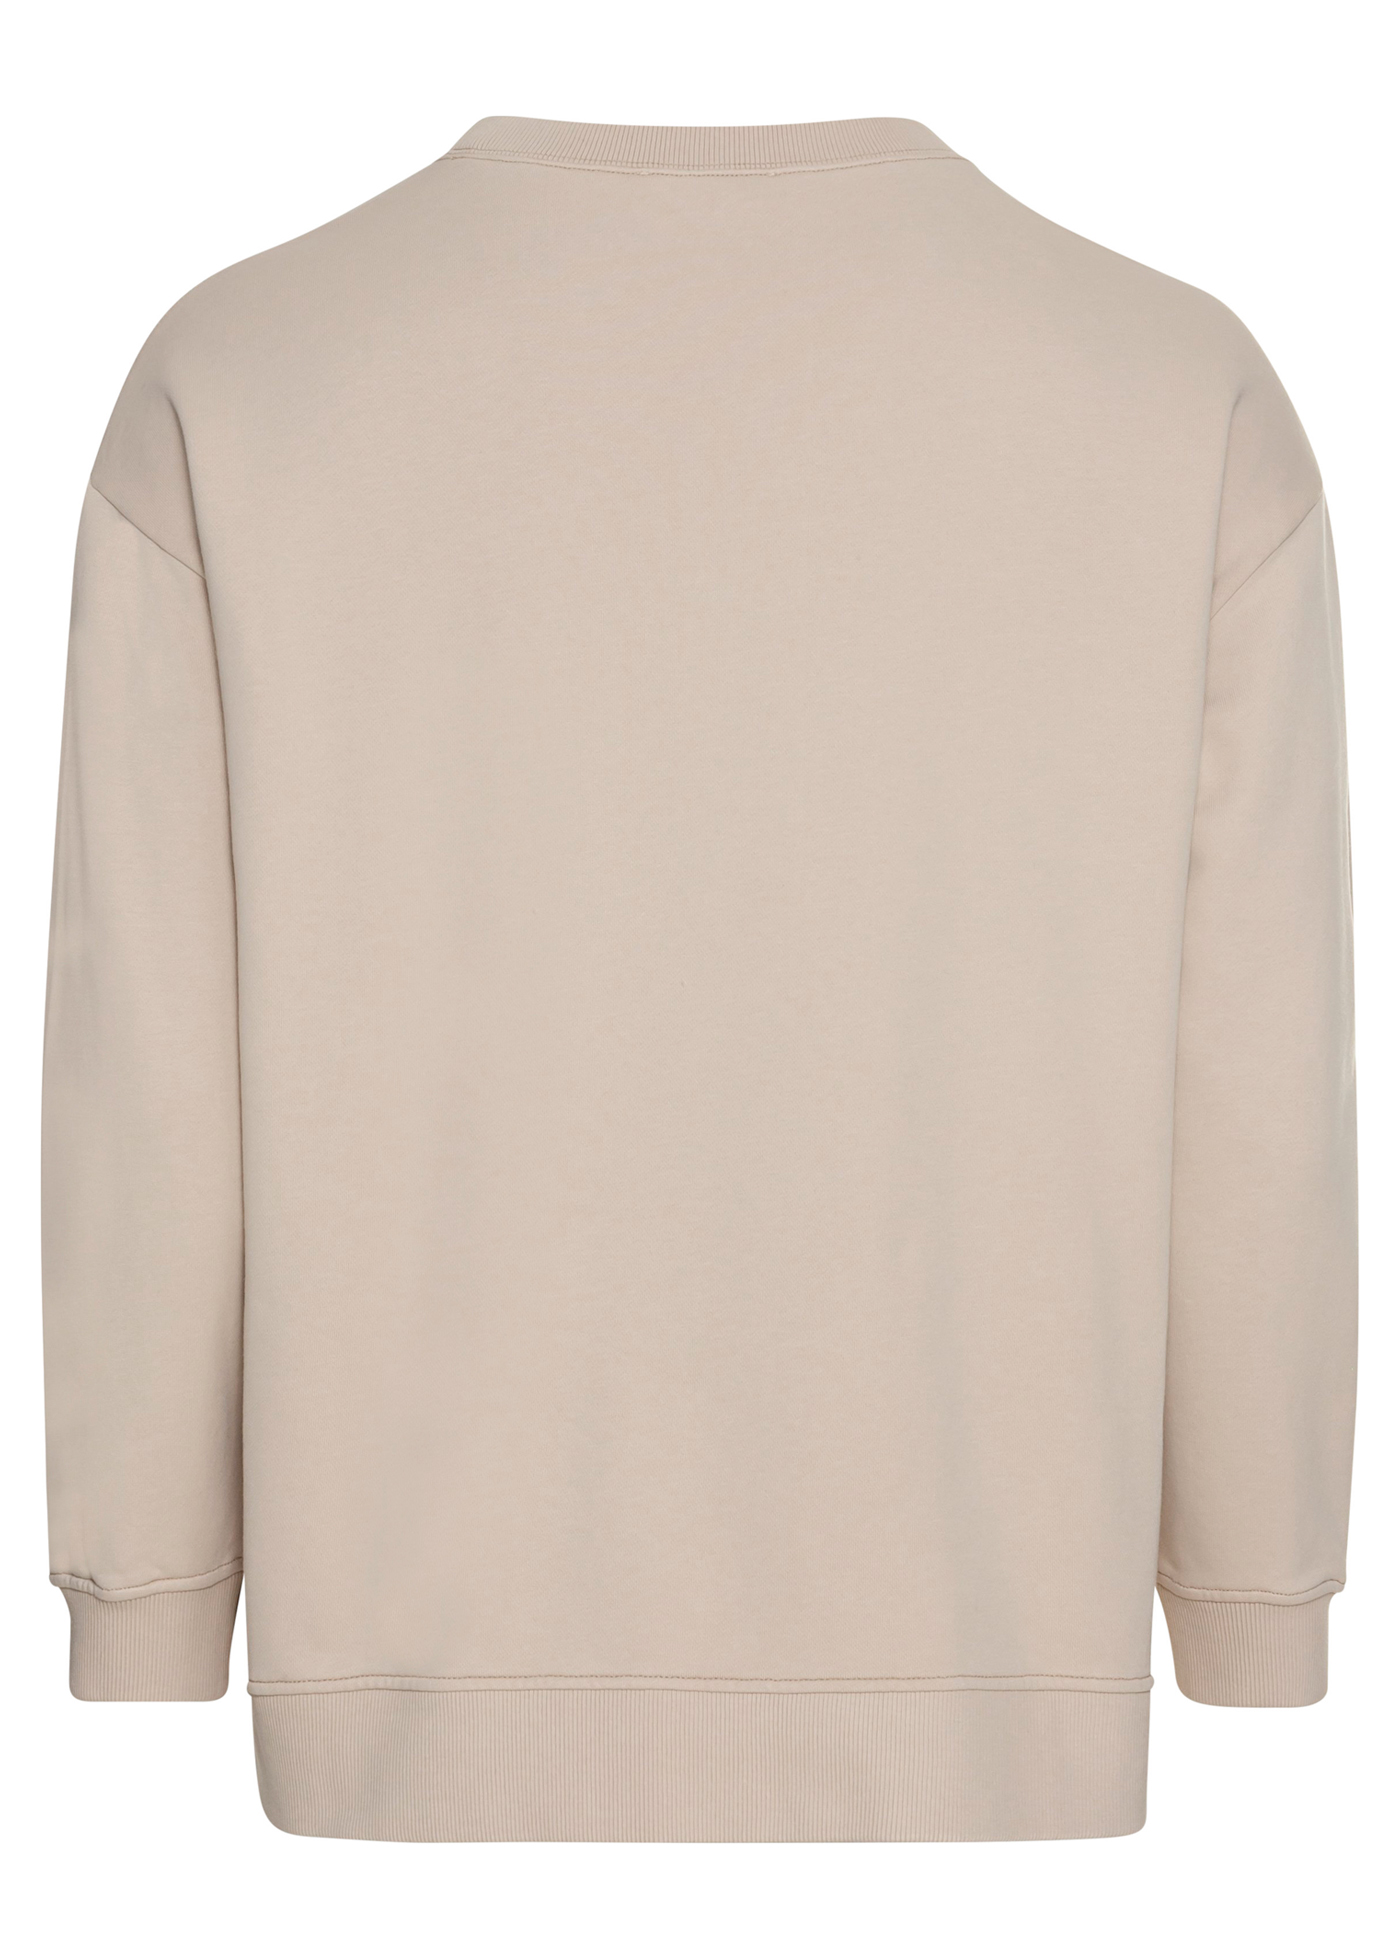 CASUAL COOLNESS sweater 1/1 image number 1